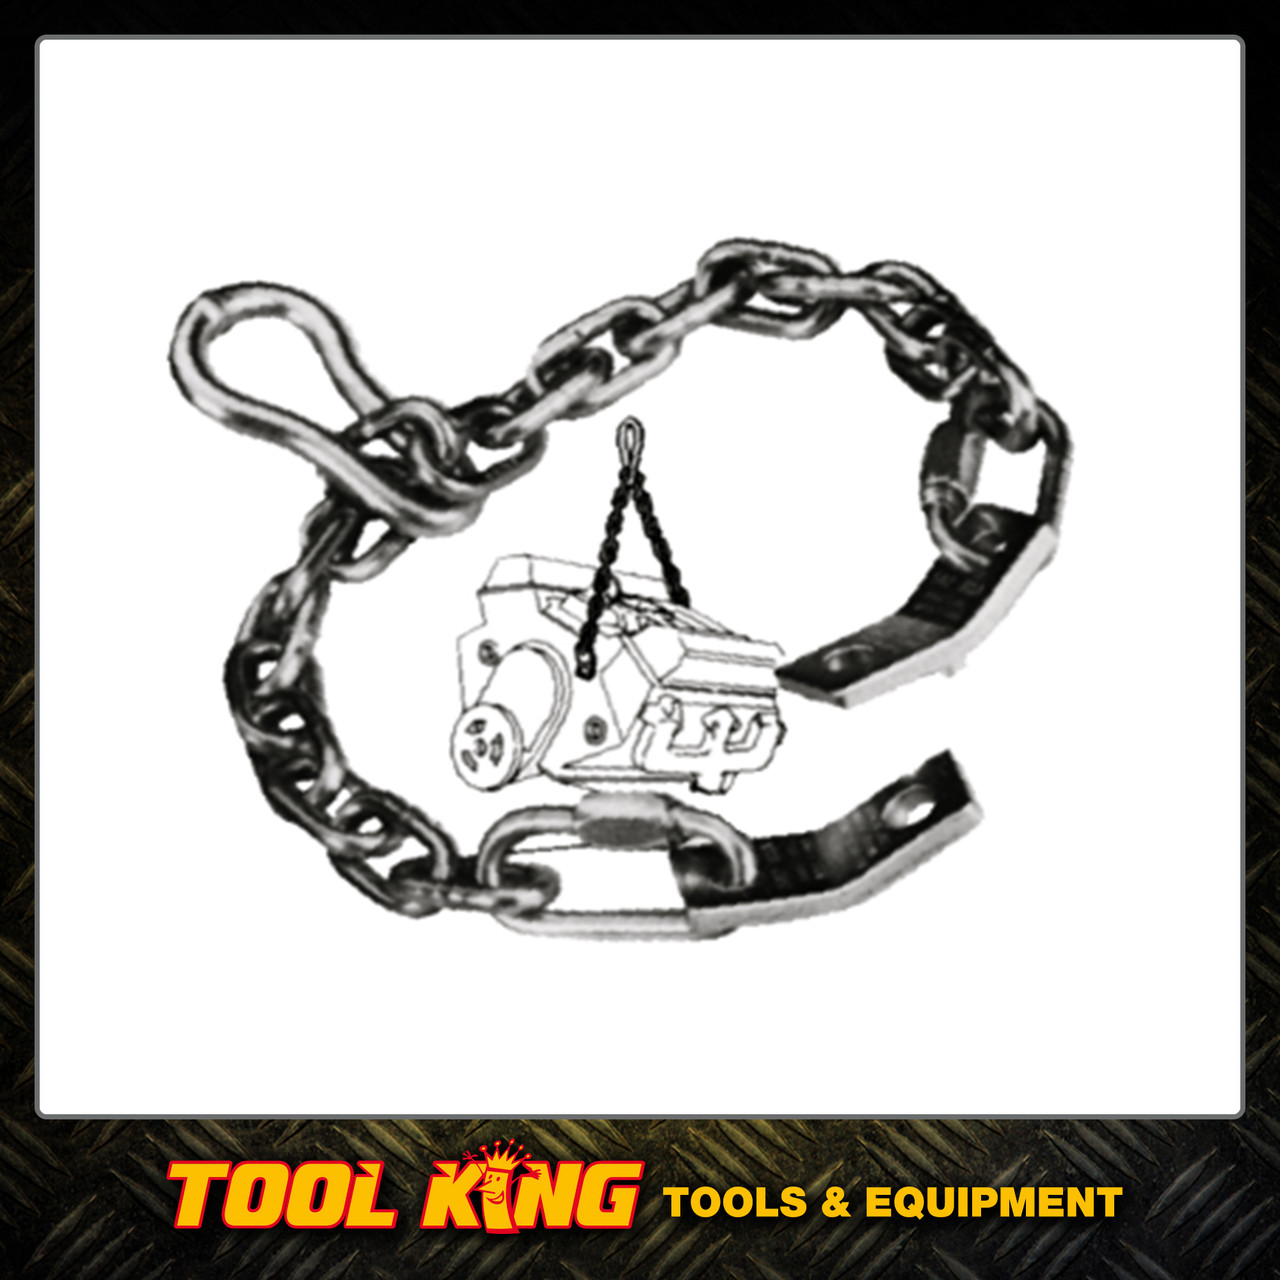 Engine Transmission lifting chain 500kg T&E Tools